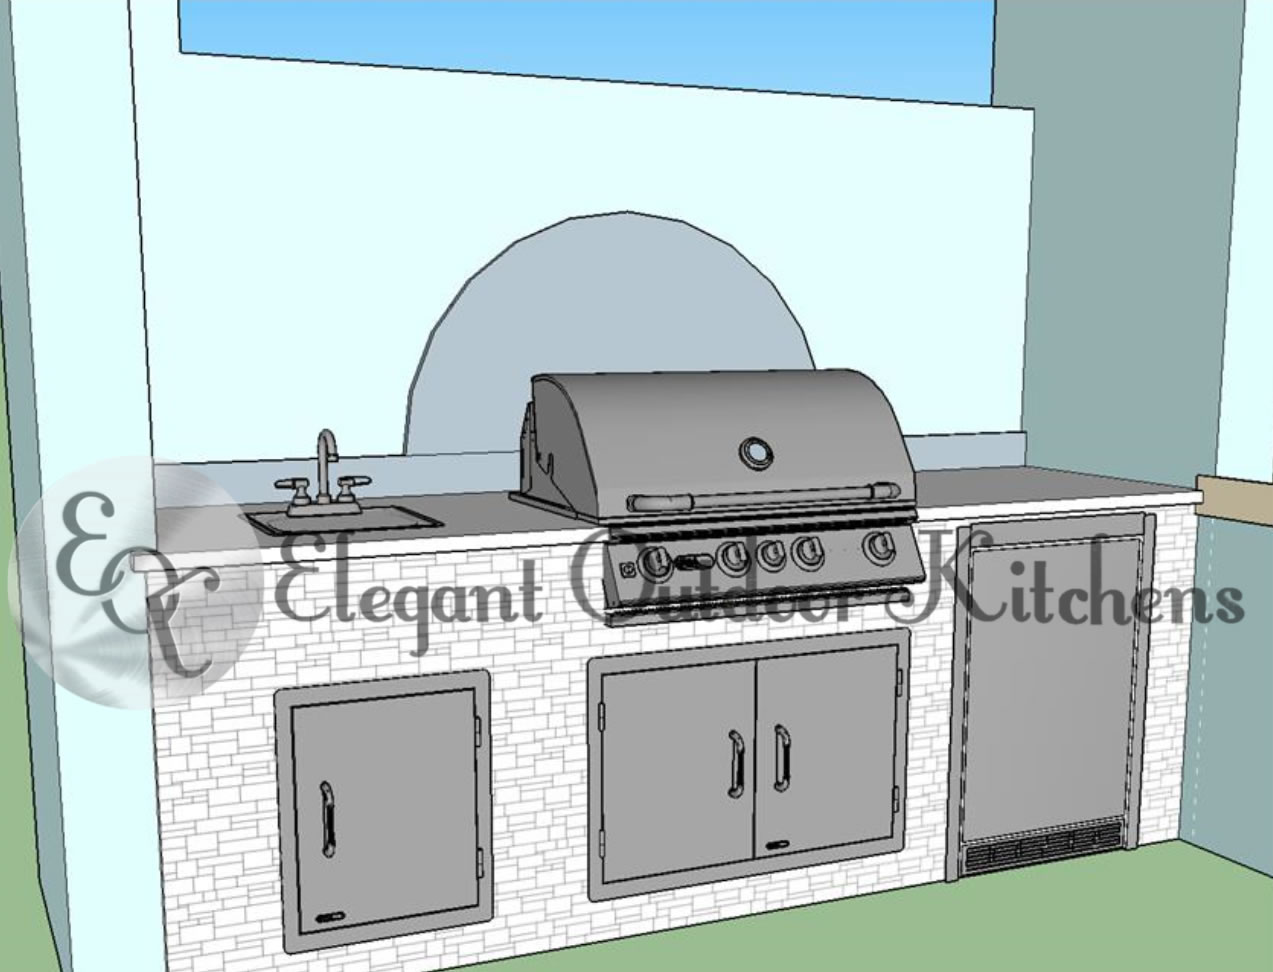 The Convenient Outdoor Kitchen Build - Elegant Outdoor Kitchens